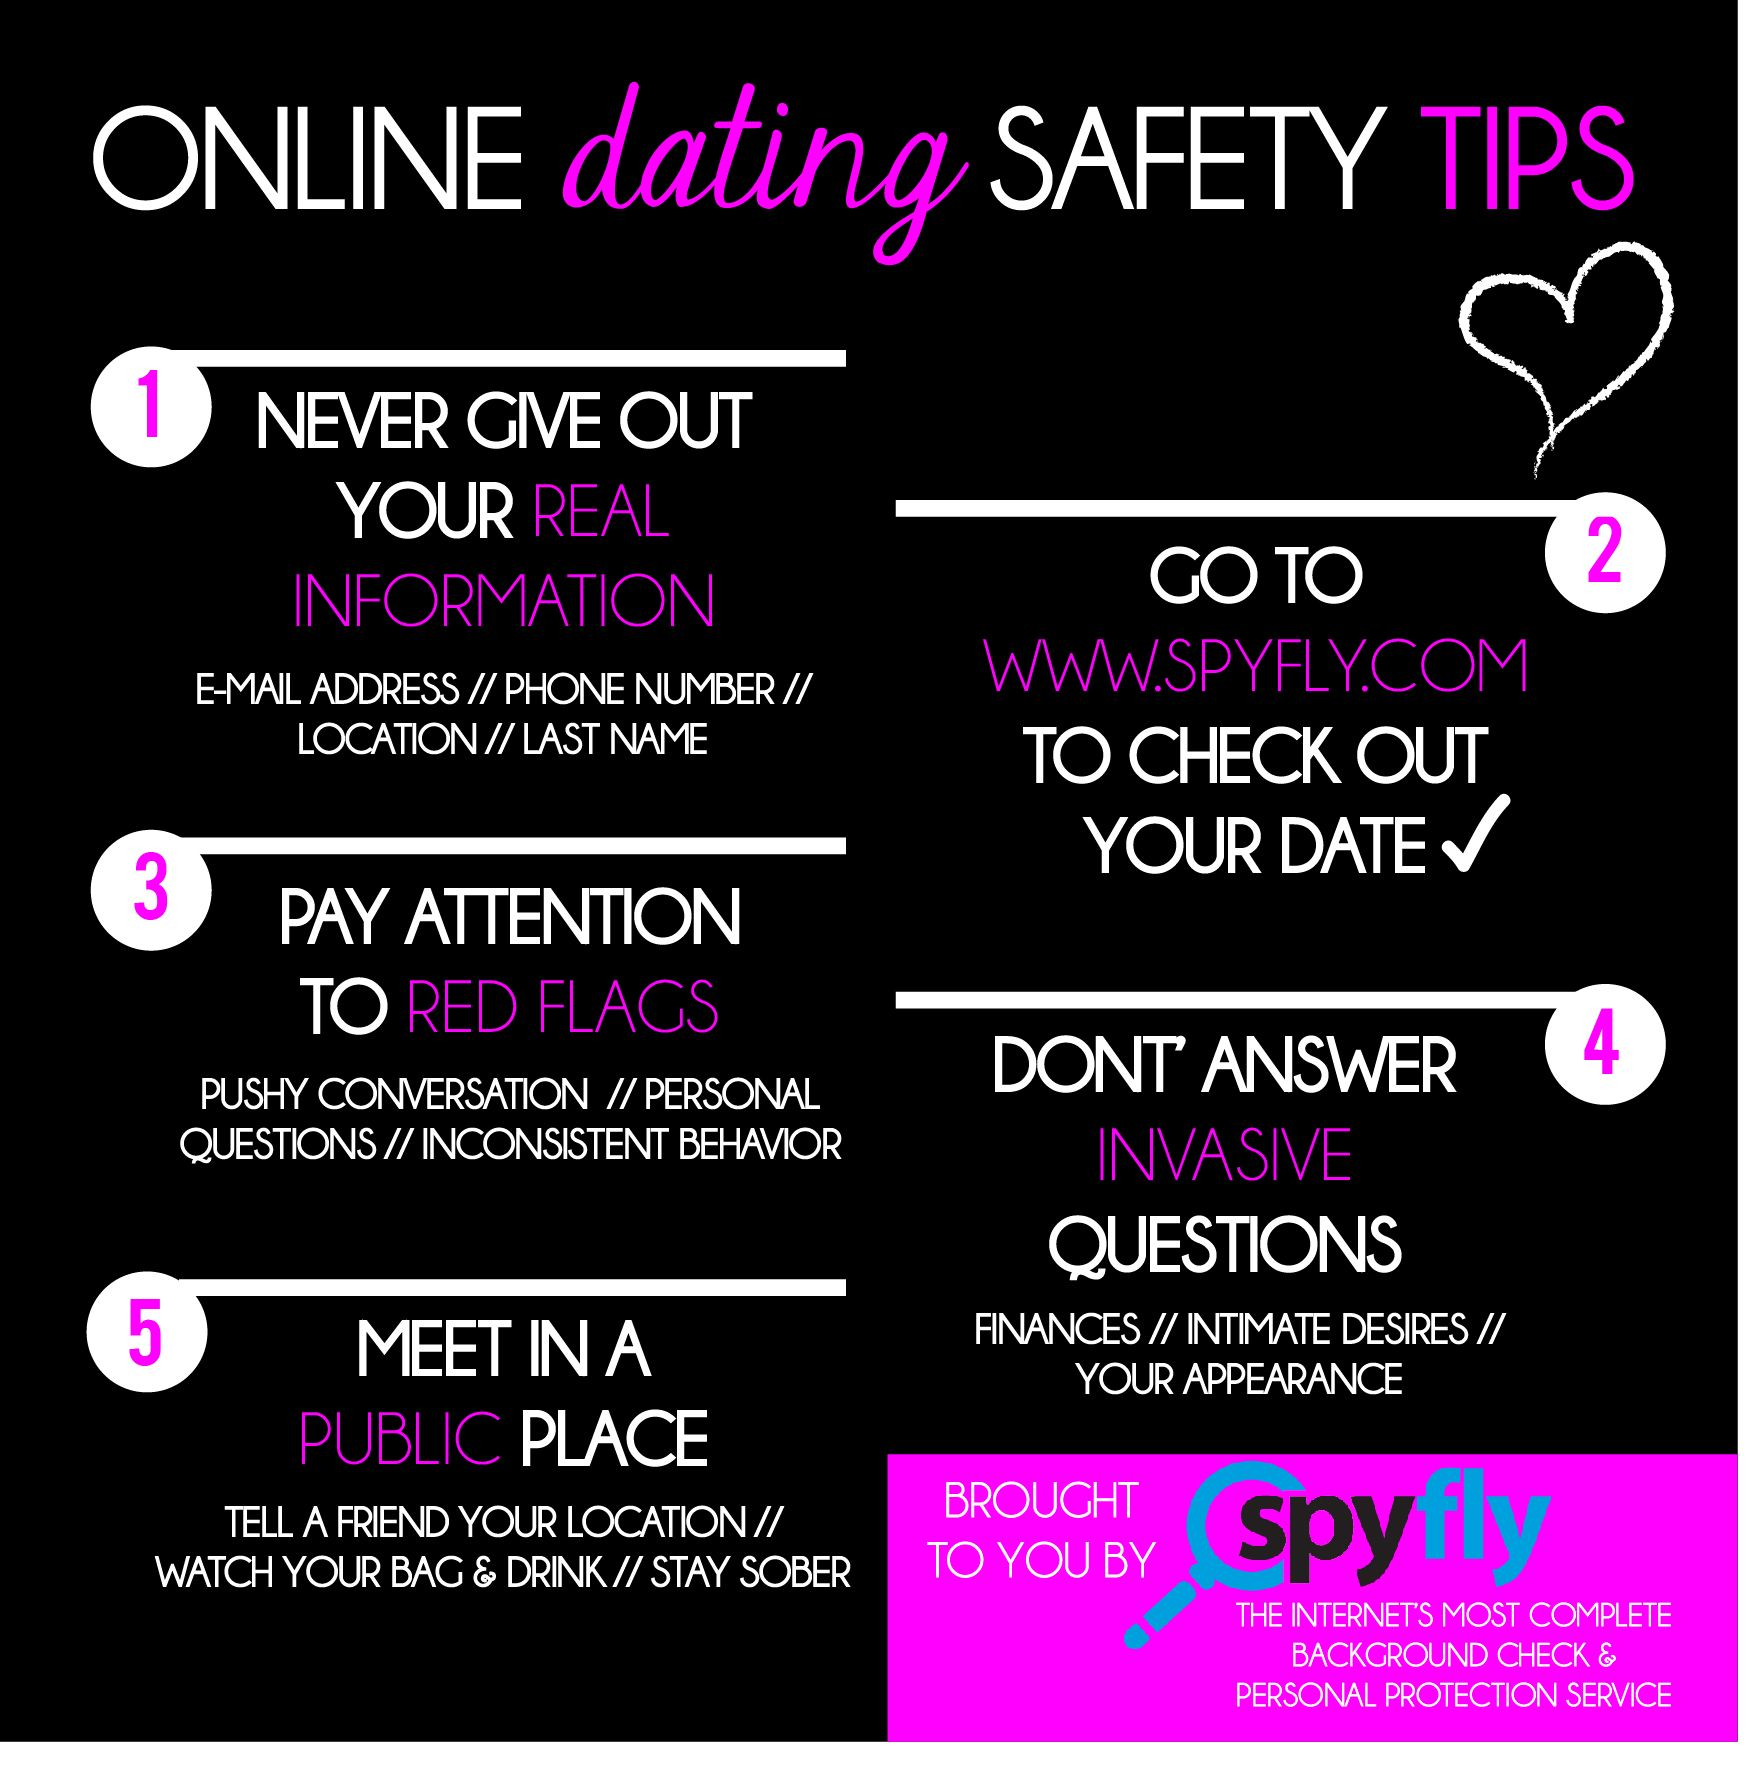 Best Online Dating Sites & Tips - Pros and Cons